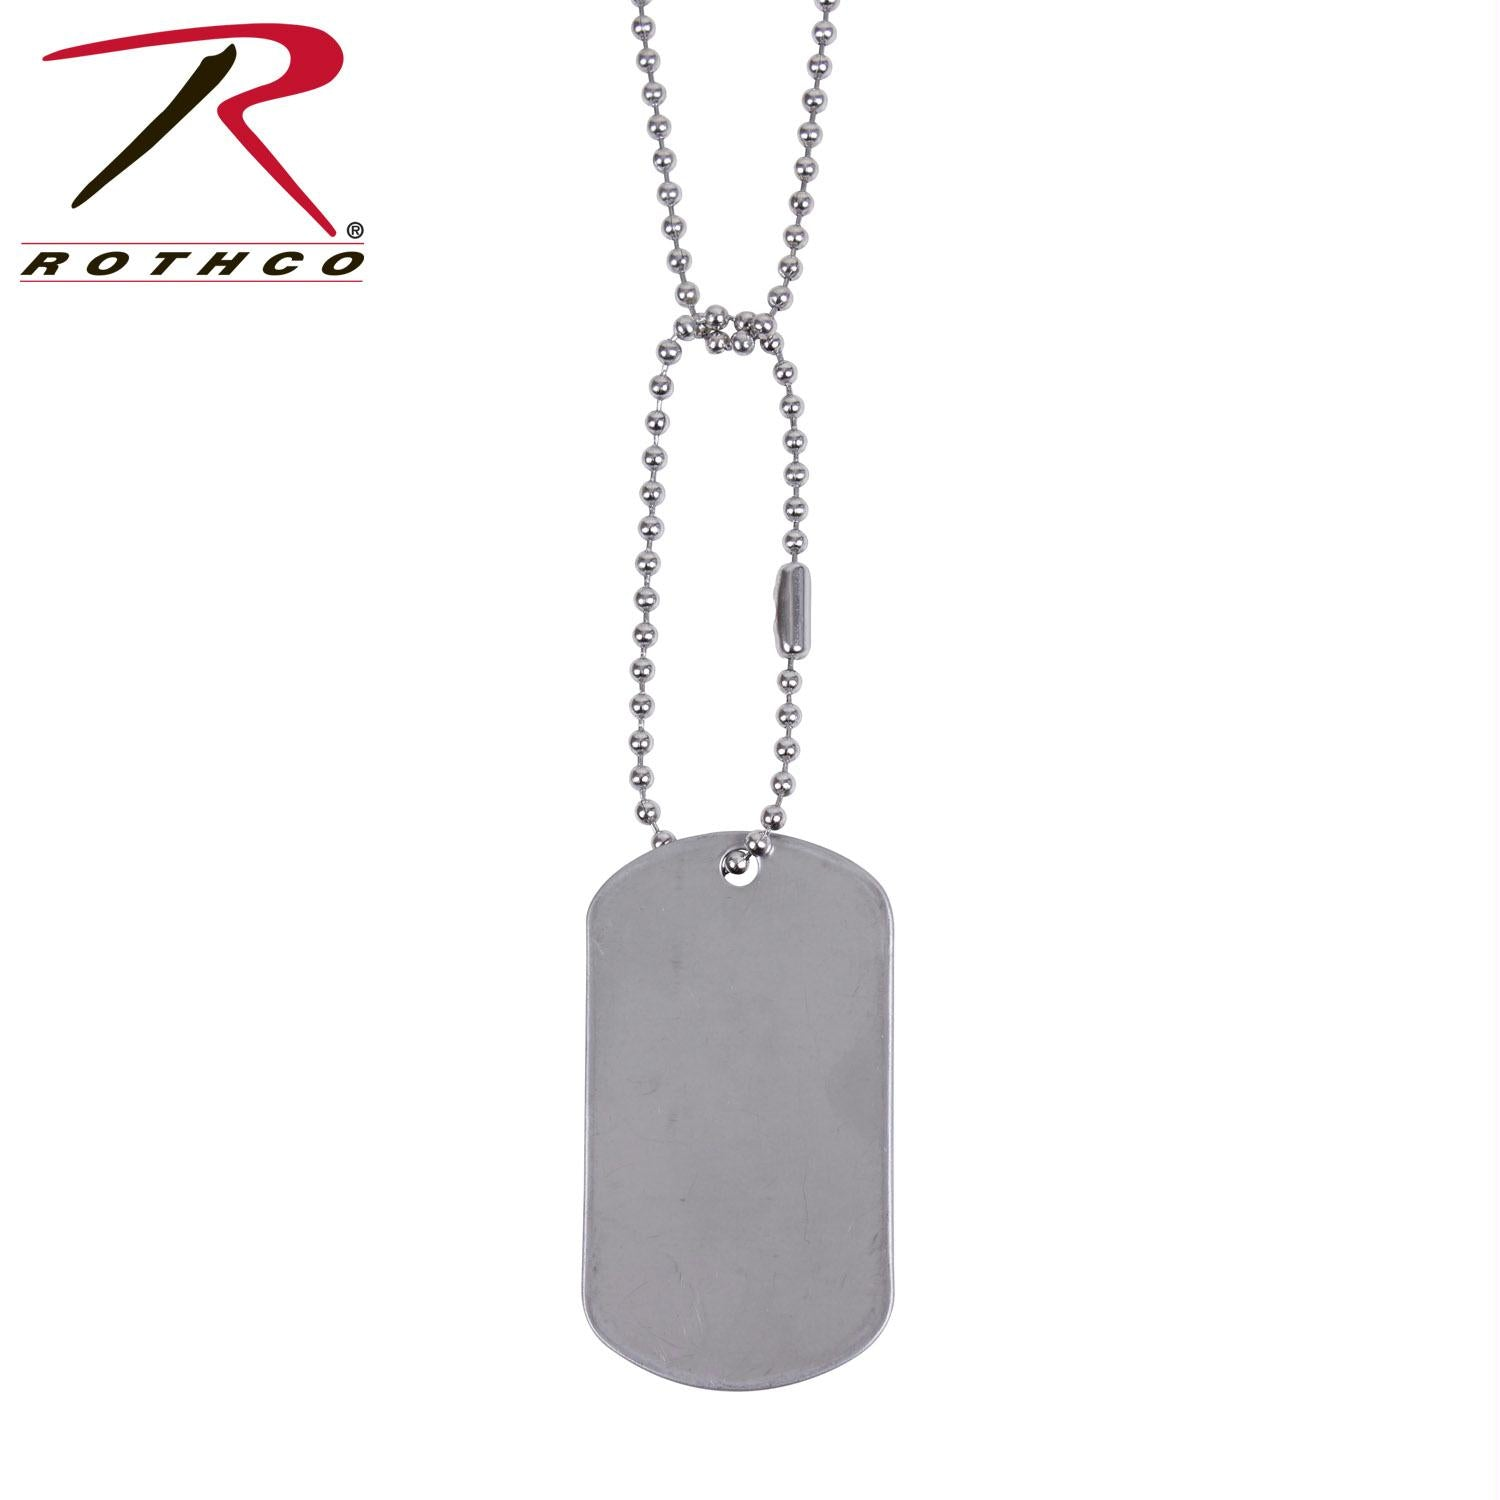 Rothco G.I. Type Dog Tag - Silver